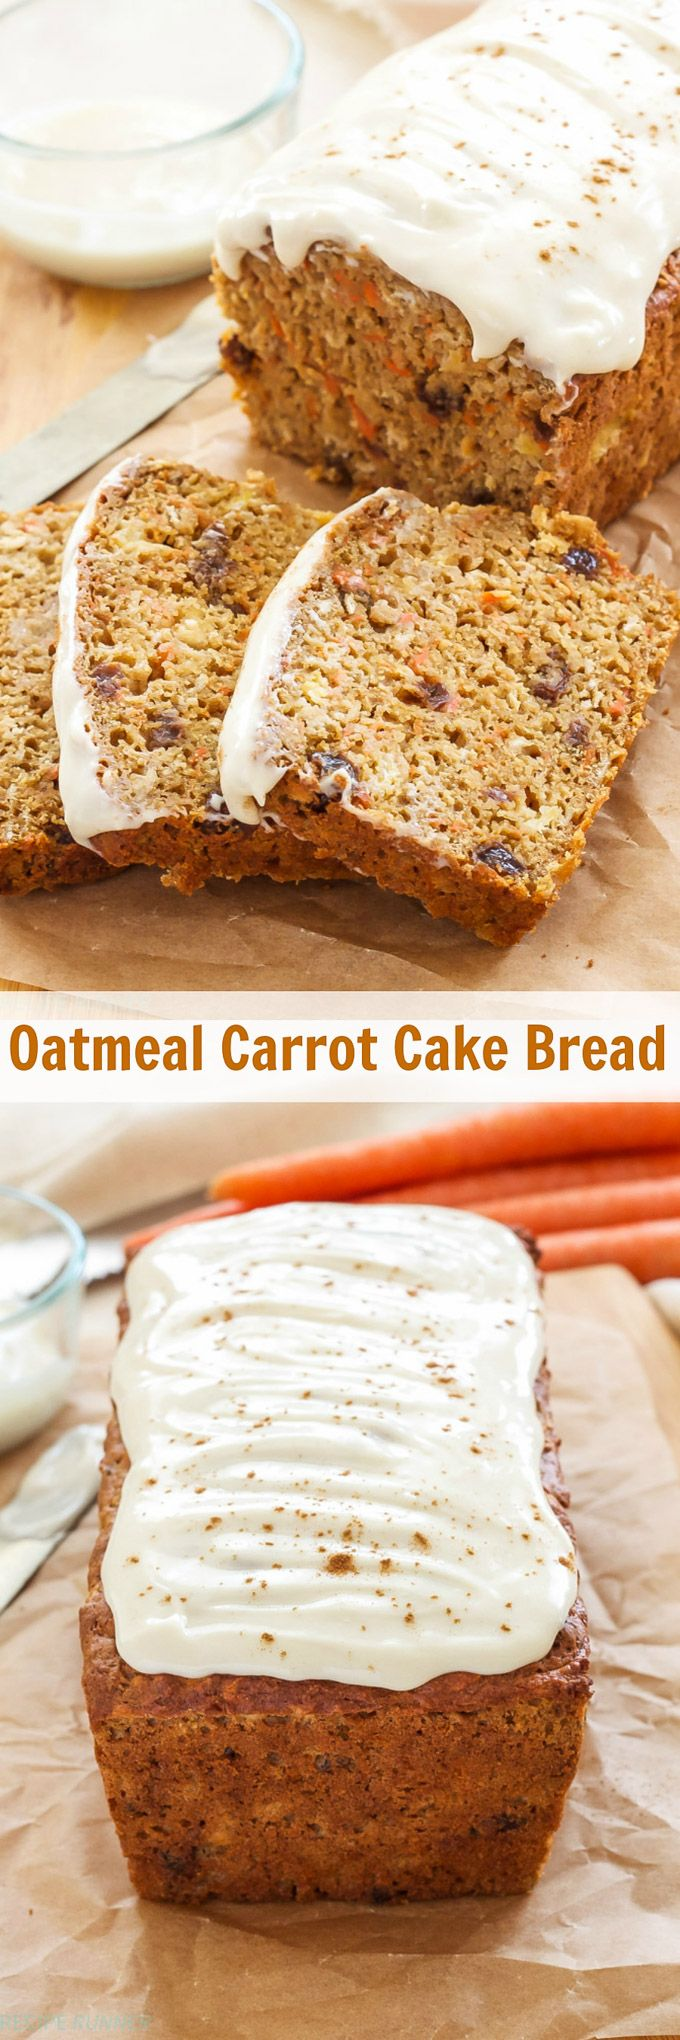 Oatmeal Carrot Cake Bread | 100% whole grain, no butter or oil and loaded with carrots, pineapple and raisins! This Oatmeal Carrot Cake Bread is perfect for brunch or dessert!